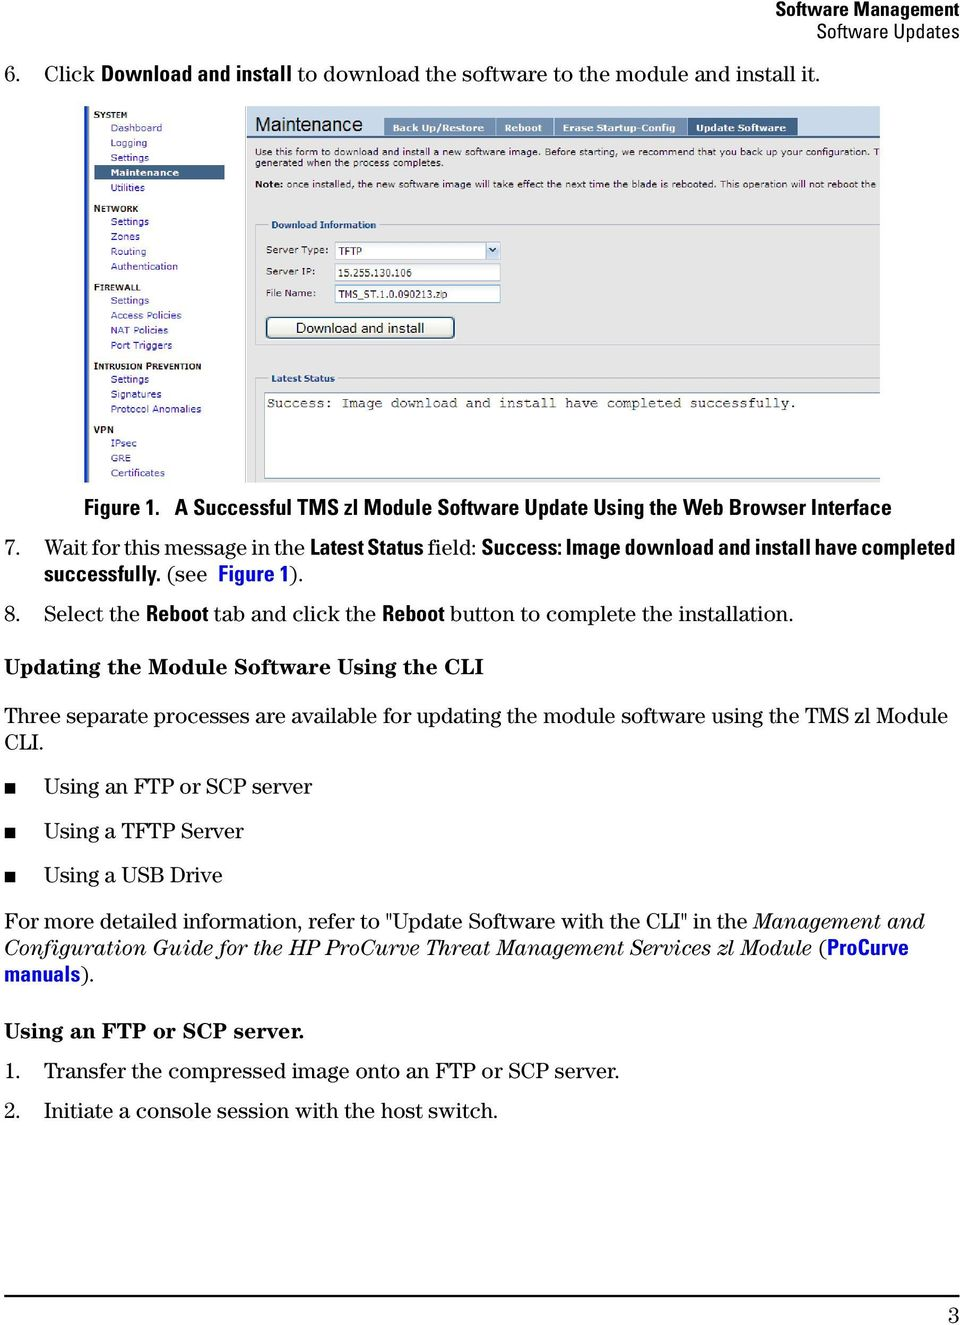 Release Notes: Version ST Software for the HP ProCurve